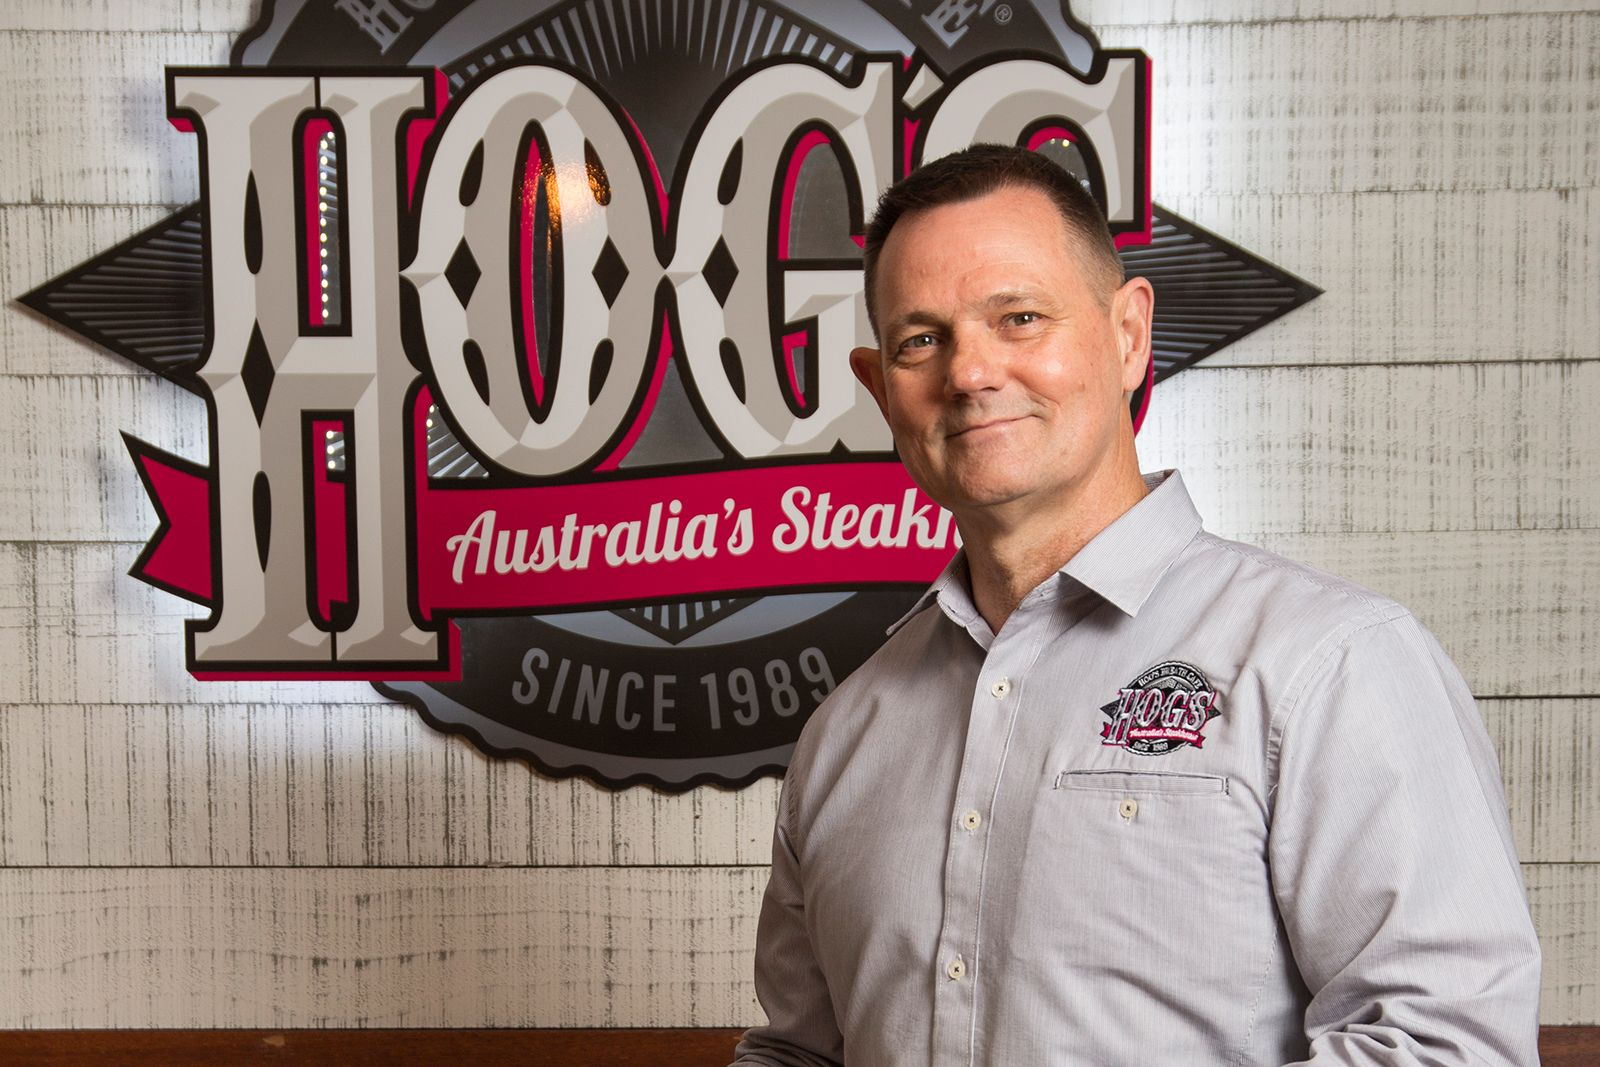 Hog's Breath CEO Ross Worth responds to franchisee claims | Inside Franchise Business